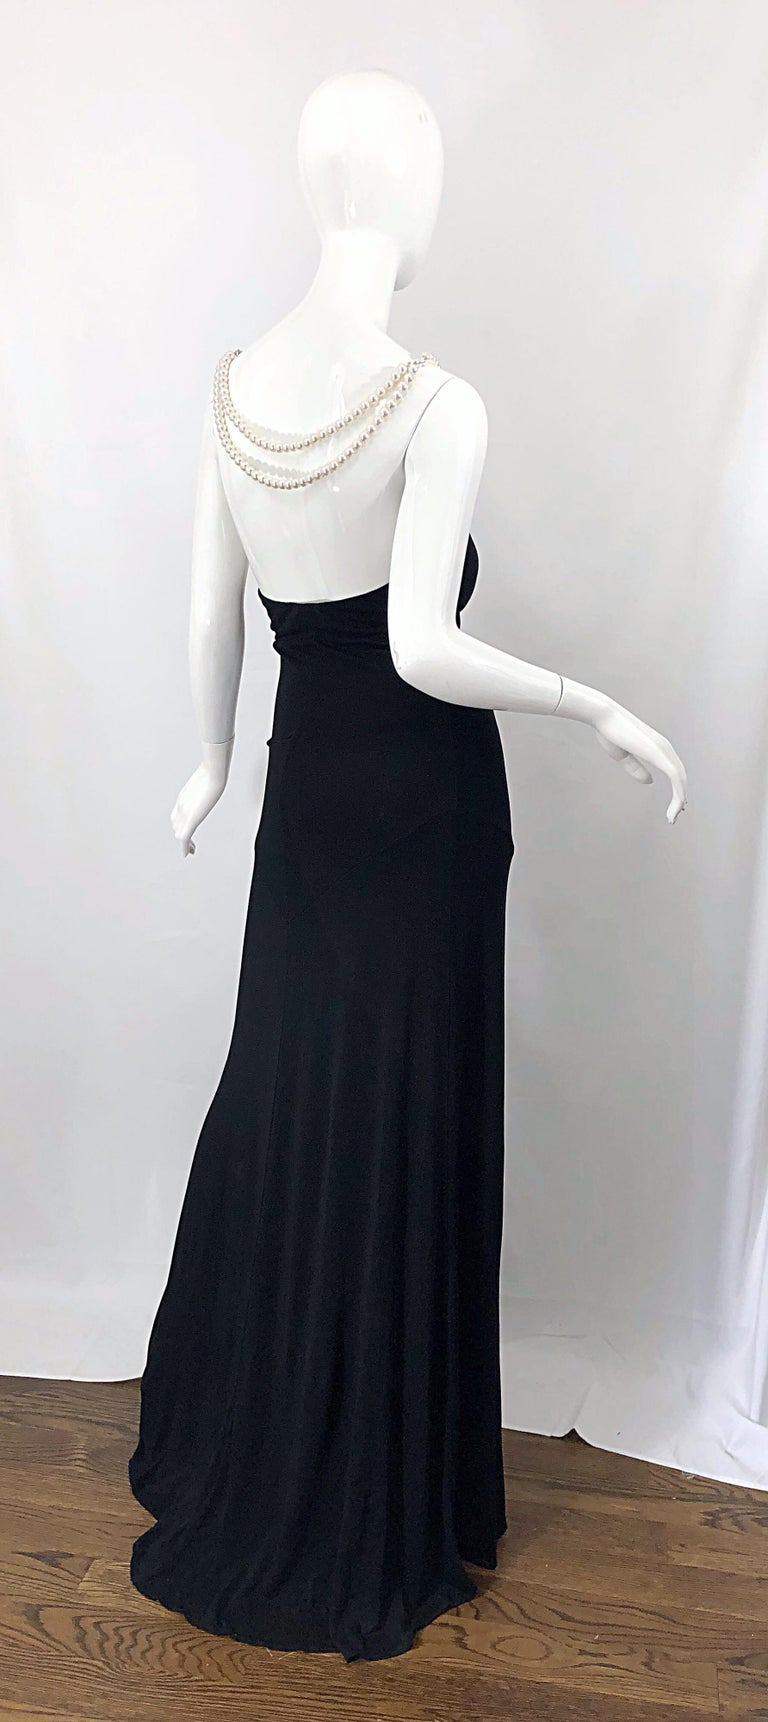 Michael Kors Collection Pearl Open Back Size 4 / 6 Black Grecian Gown Dress For Sale 10